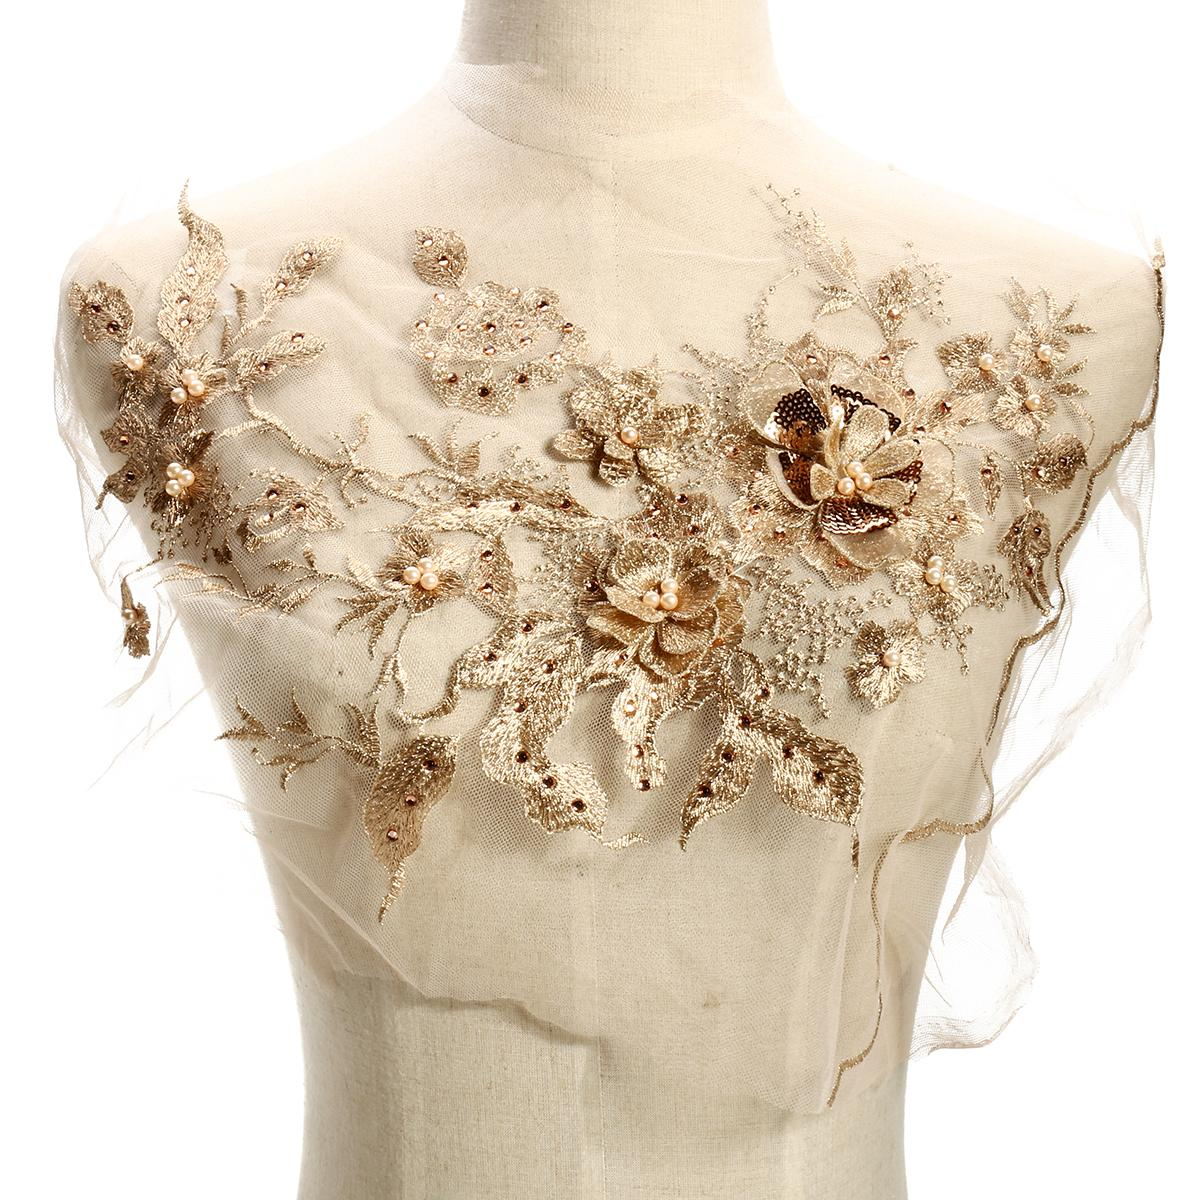 Pearl Beaded 3D Flowers Lace Applique Wedding Dress Decor Floral Patch  Costume - intl Free 524b9e28aa5e